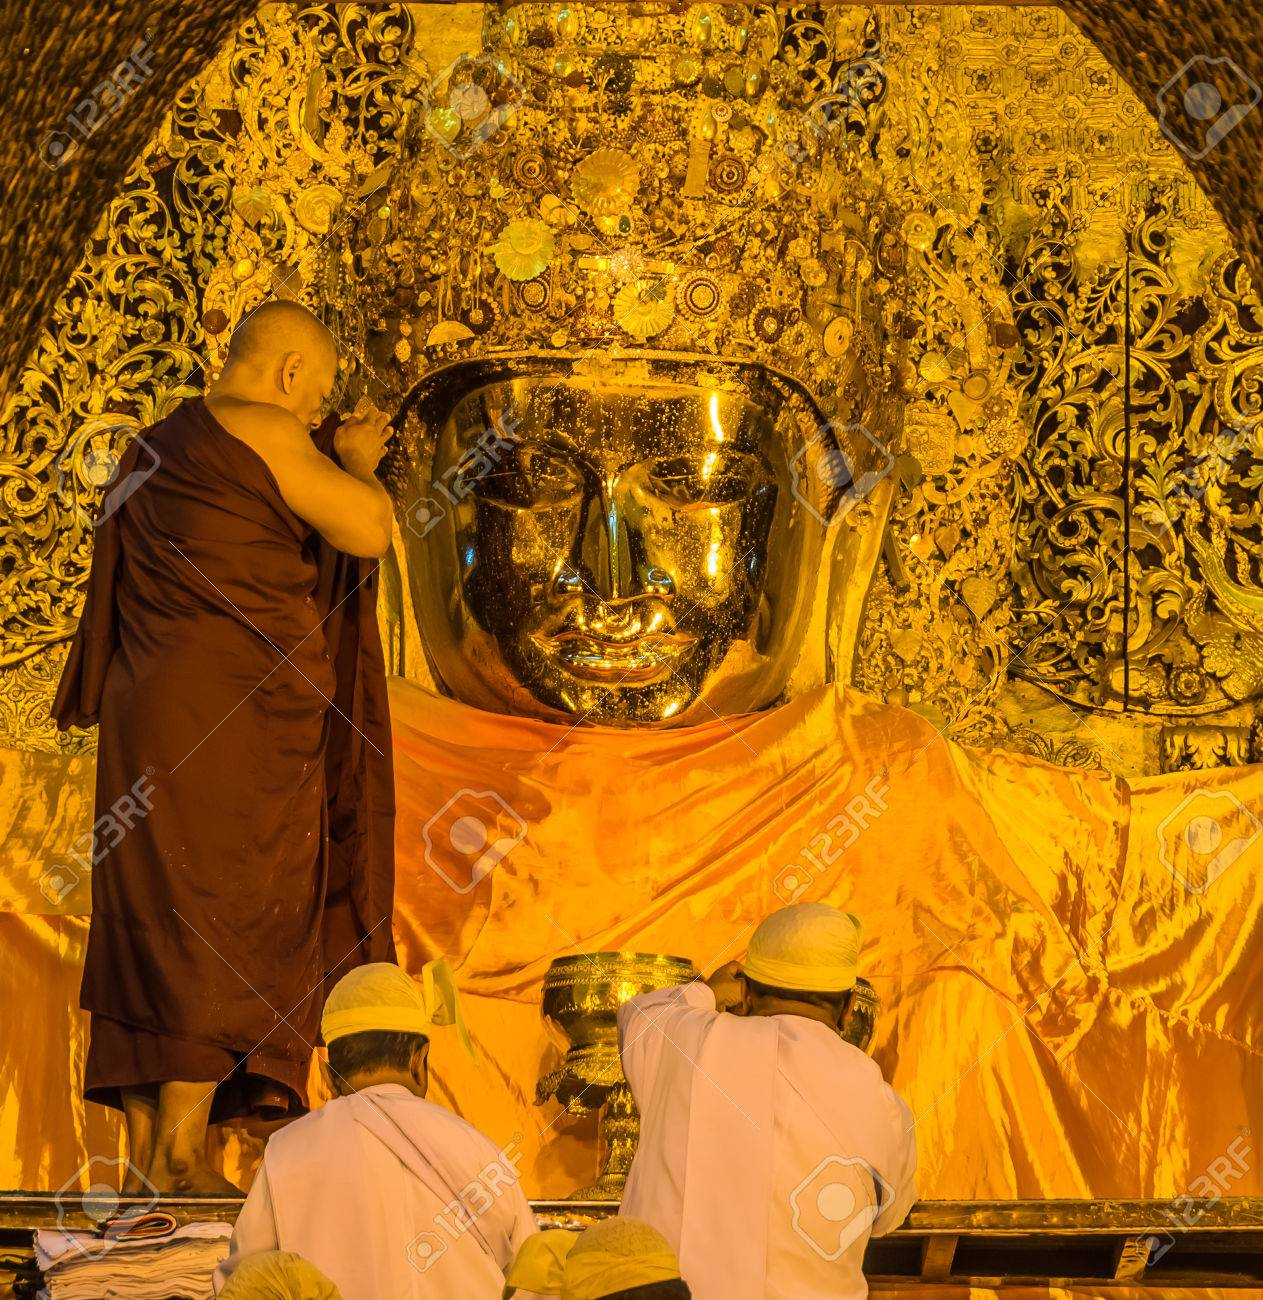 The ritual of daily face washing Mahamuni Buddha in Mandalay, Myanmar Stock Photo - 25655729